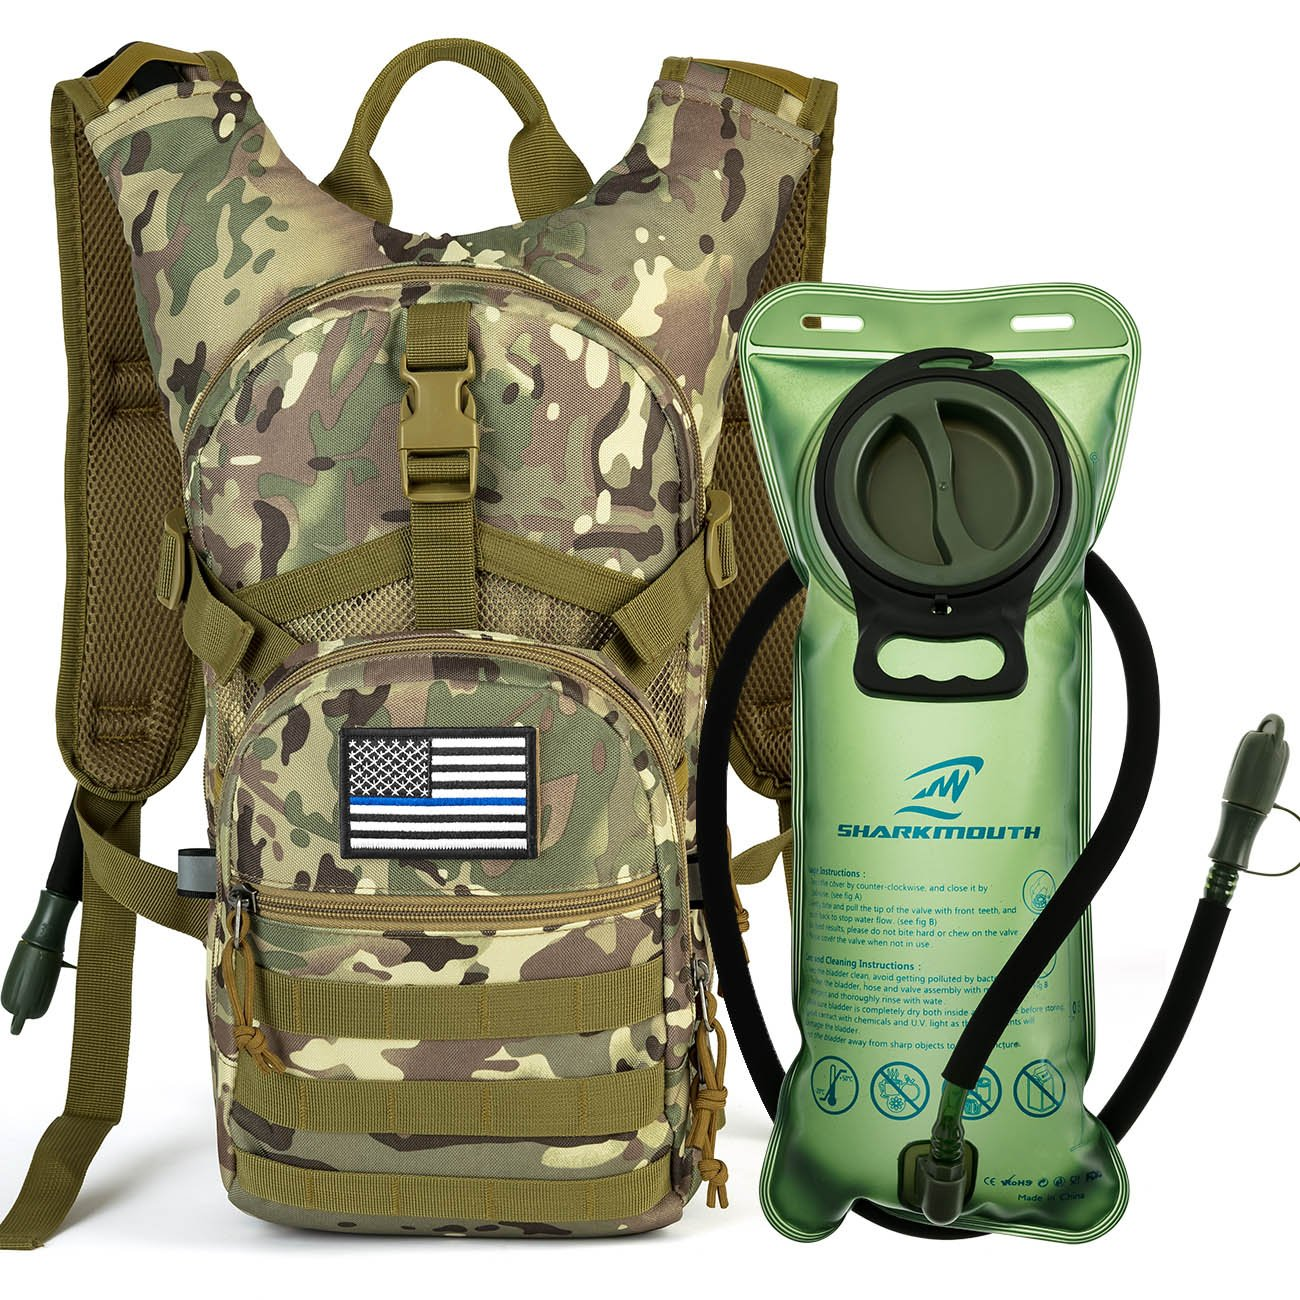 SHARKMOUTH Tactical MOLLE Hydration Pack Backpack 900D with 2L Leak-Proof Water Bladder, Keep Liquids Cool for Up to 4 Hours, Outdoor Daypack for Cycling, Hiking, Running, USA Flag Patch, CPTan by SHARKMOUTH